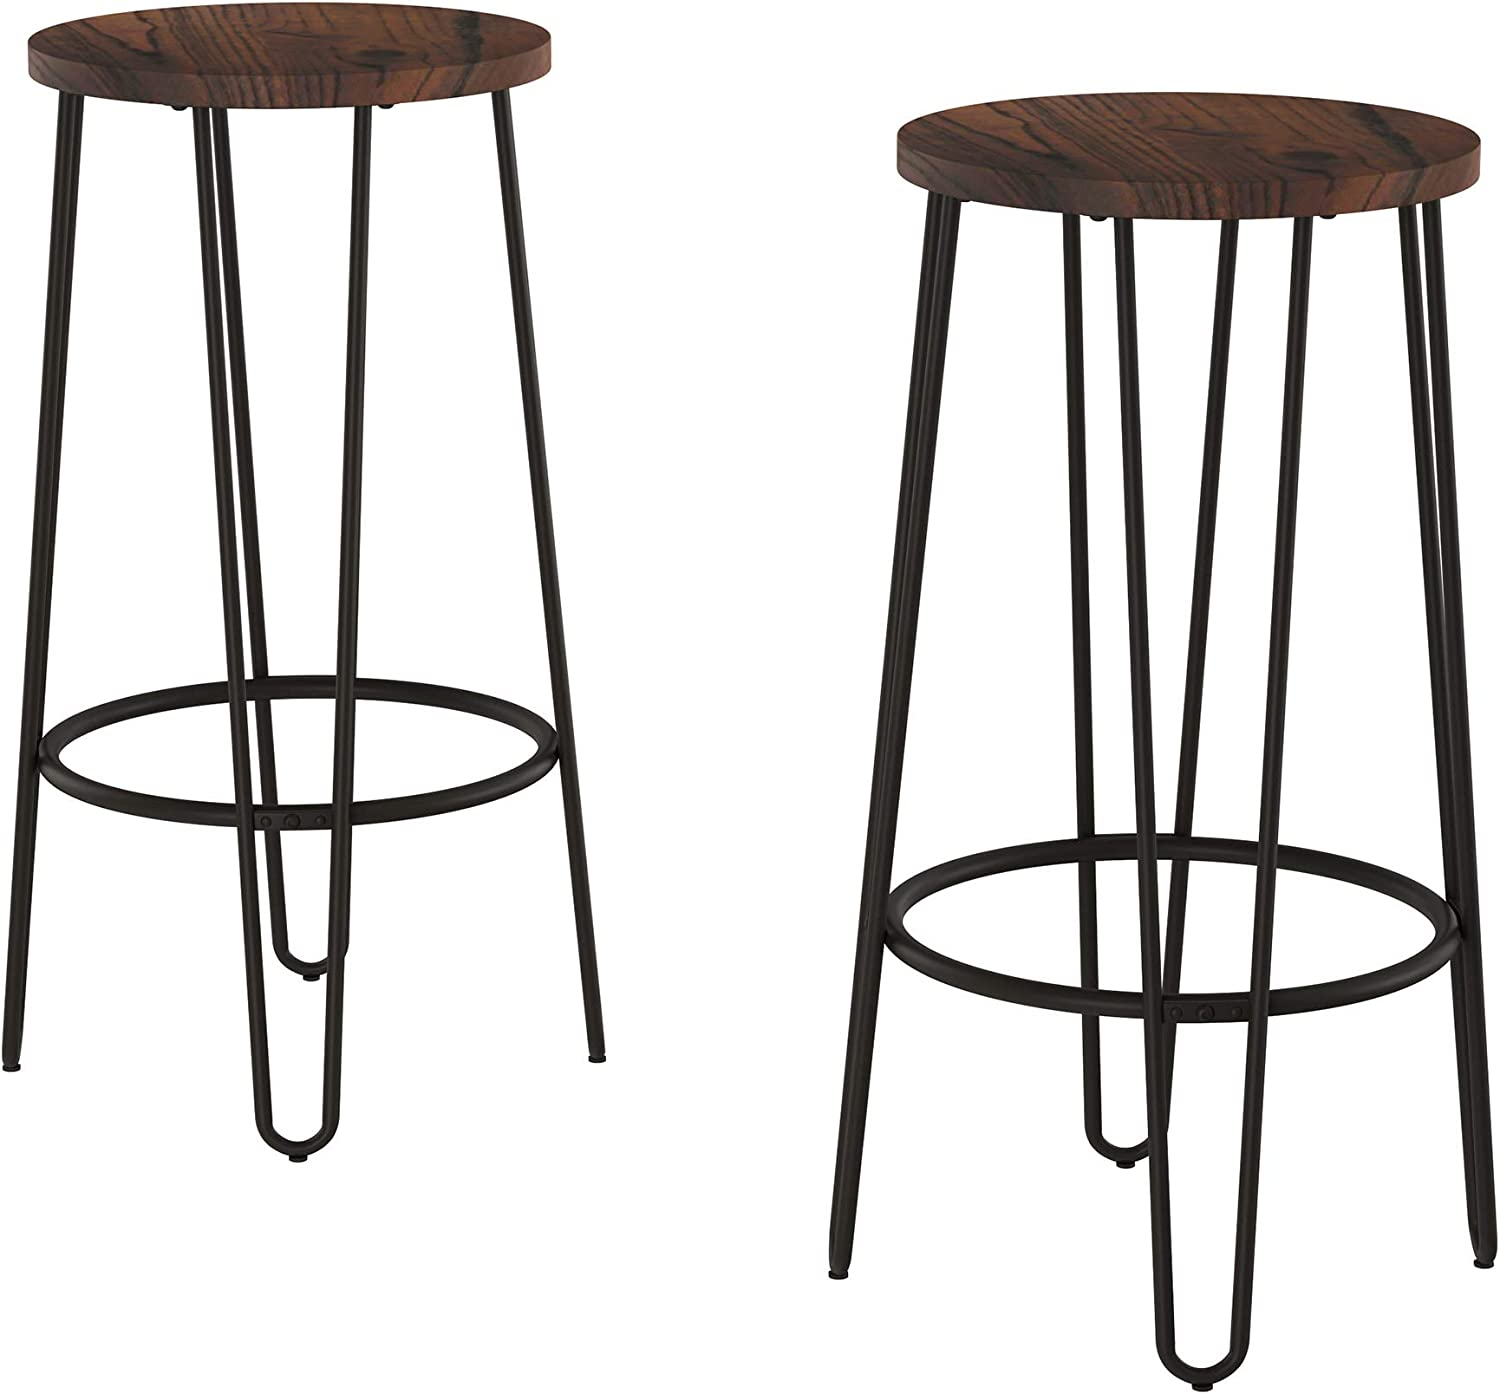 Lavish Home Bar Height Stools-Backless Barstools with Hairpin Legs Wood Seat-Kitchen or Dining Room- Modern Farmhouse Accent Furniture (Set of 2)